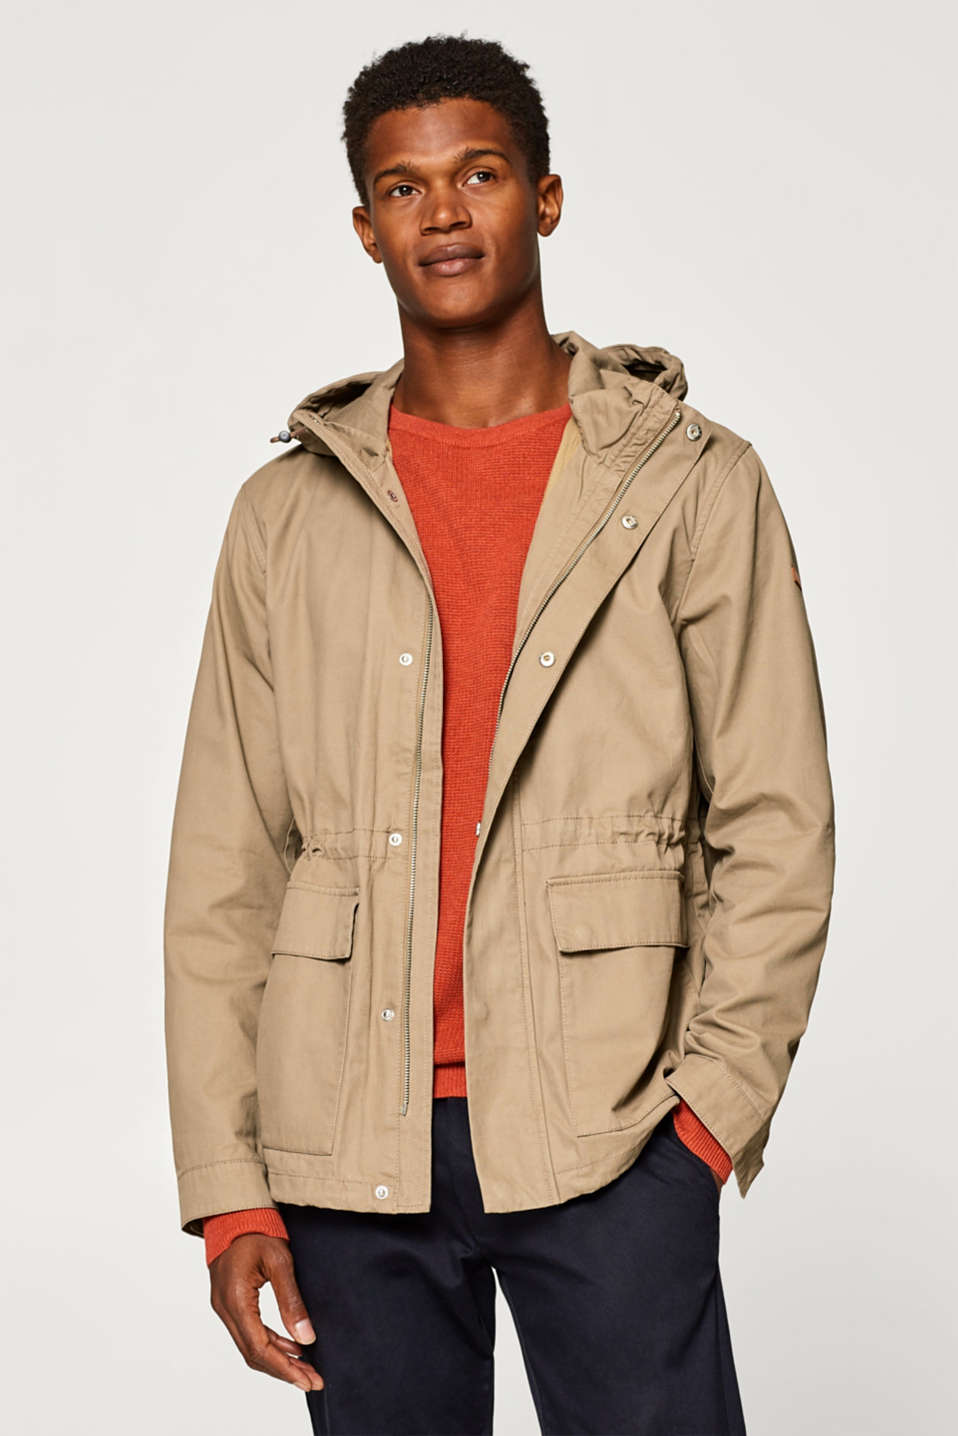 Esprit - Short, hooded parka in 100% cotton